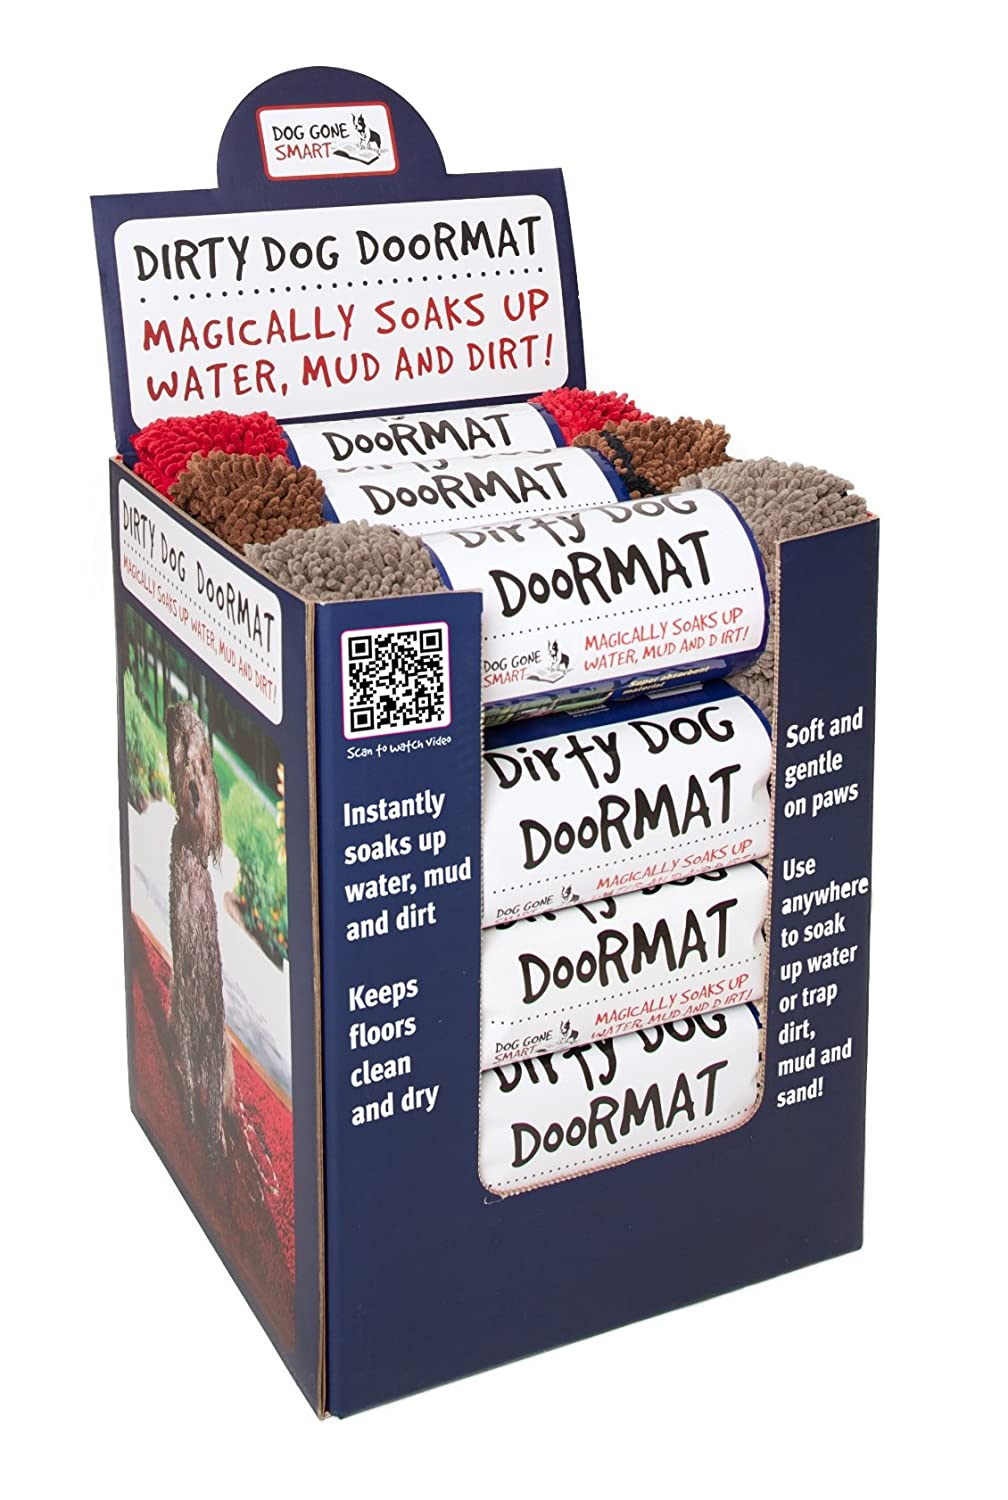 Amazon.com : Dog Gone Smart Dirty Dog Doormat, Large, Brown : Pet Bed Mats  : Pet Supplies